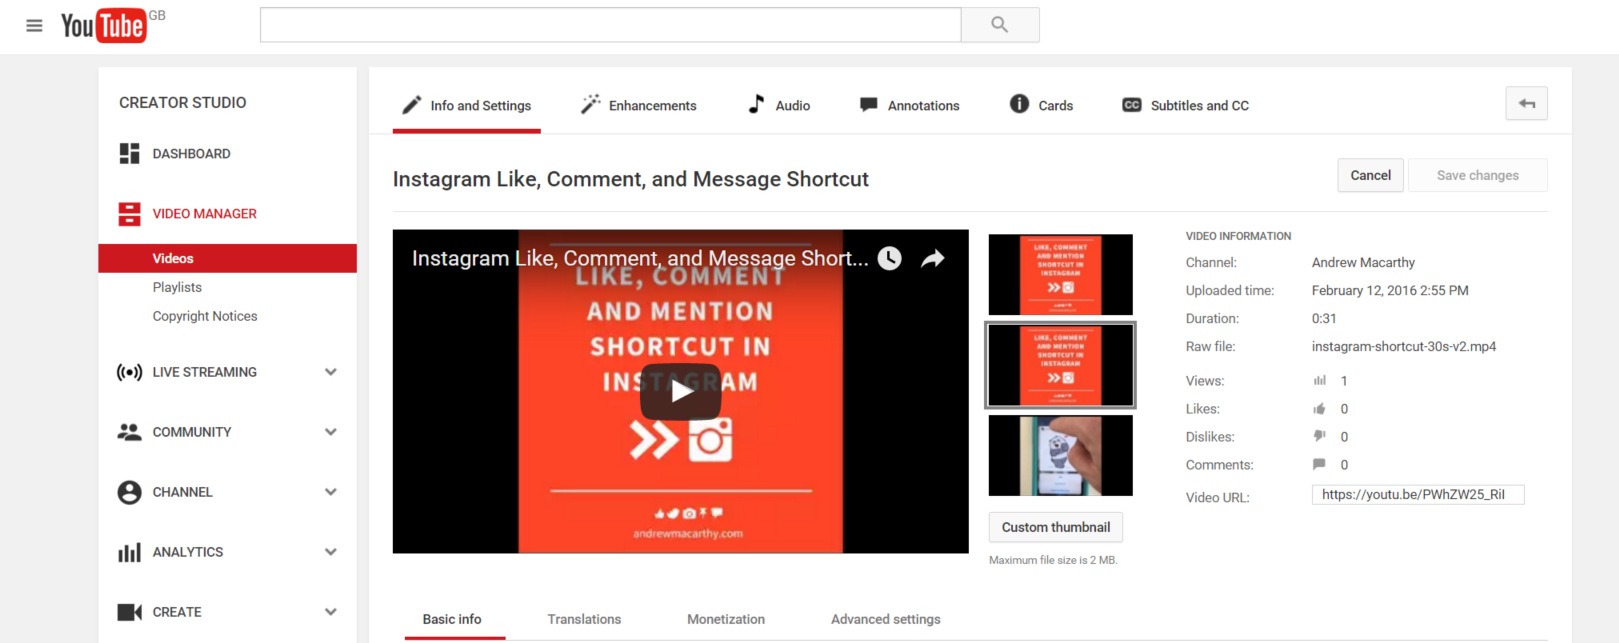 How to Add YouTube Poll Cards to Videos (And Everything Else